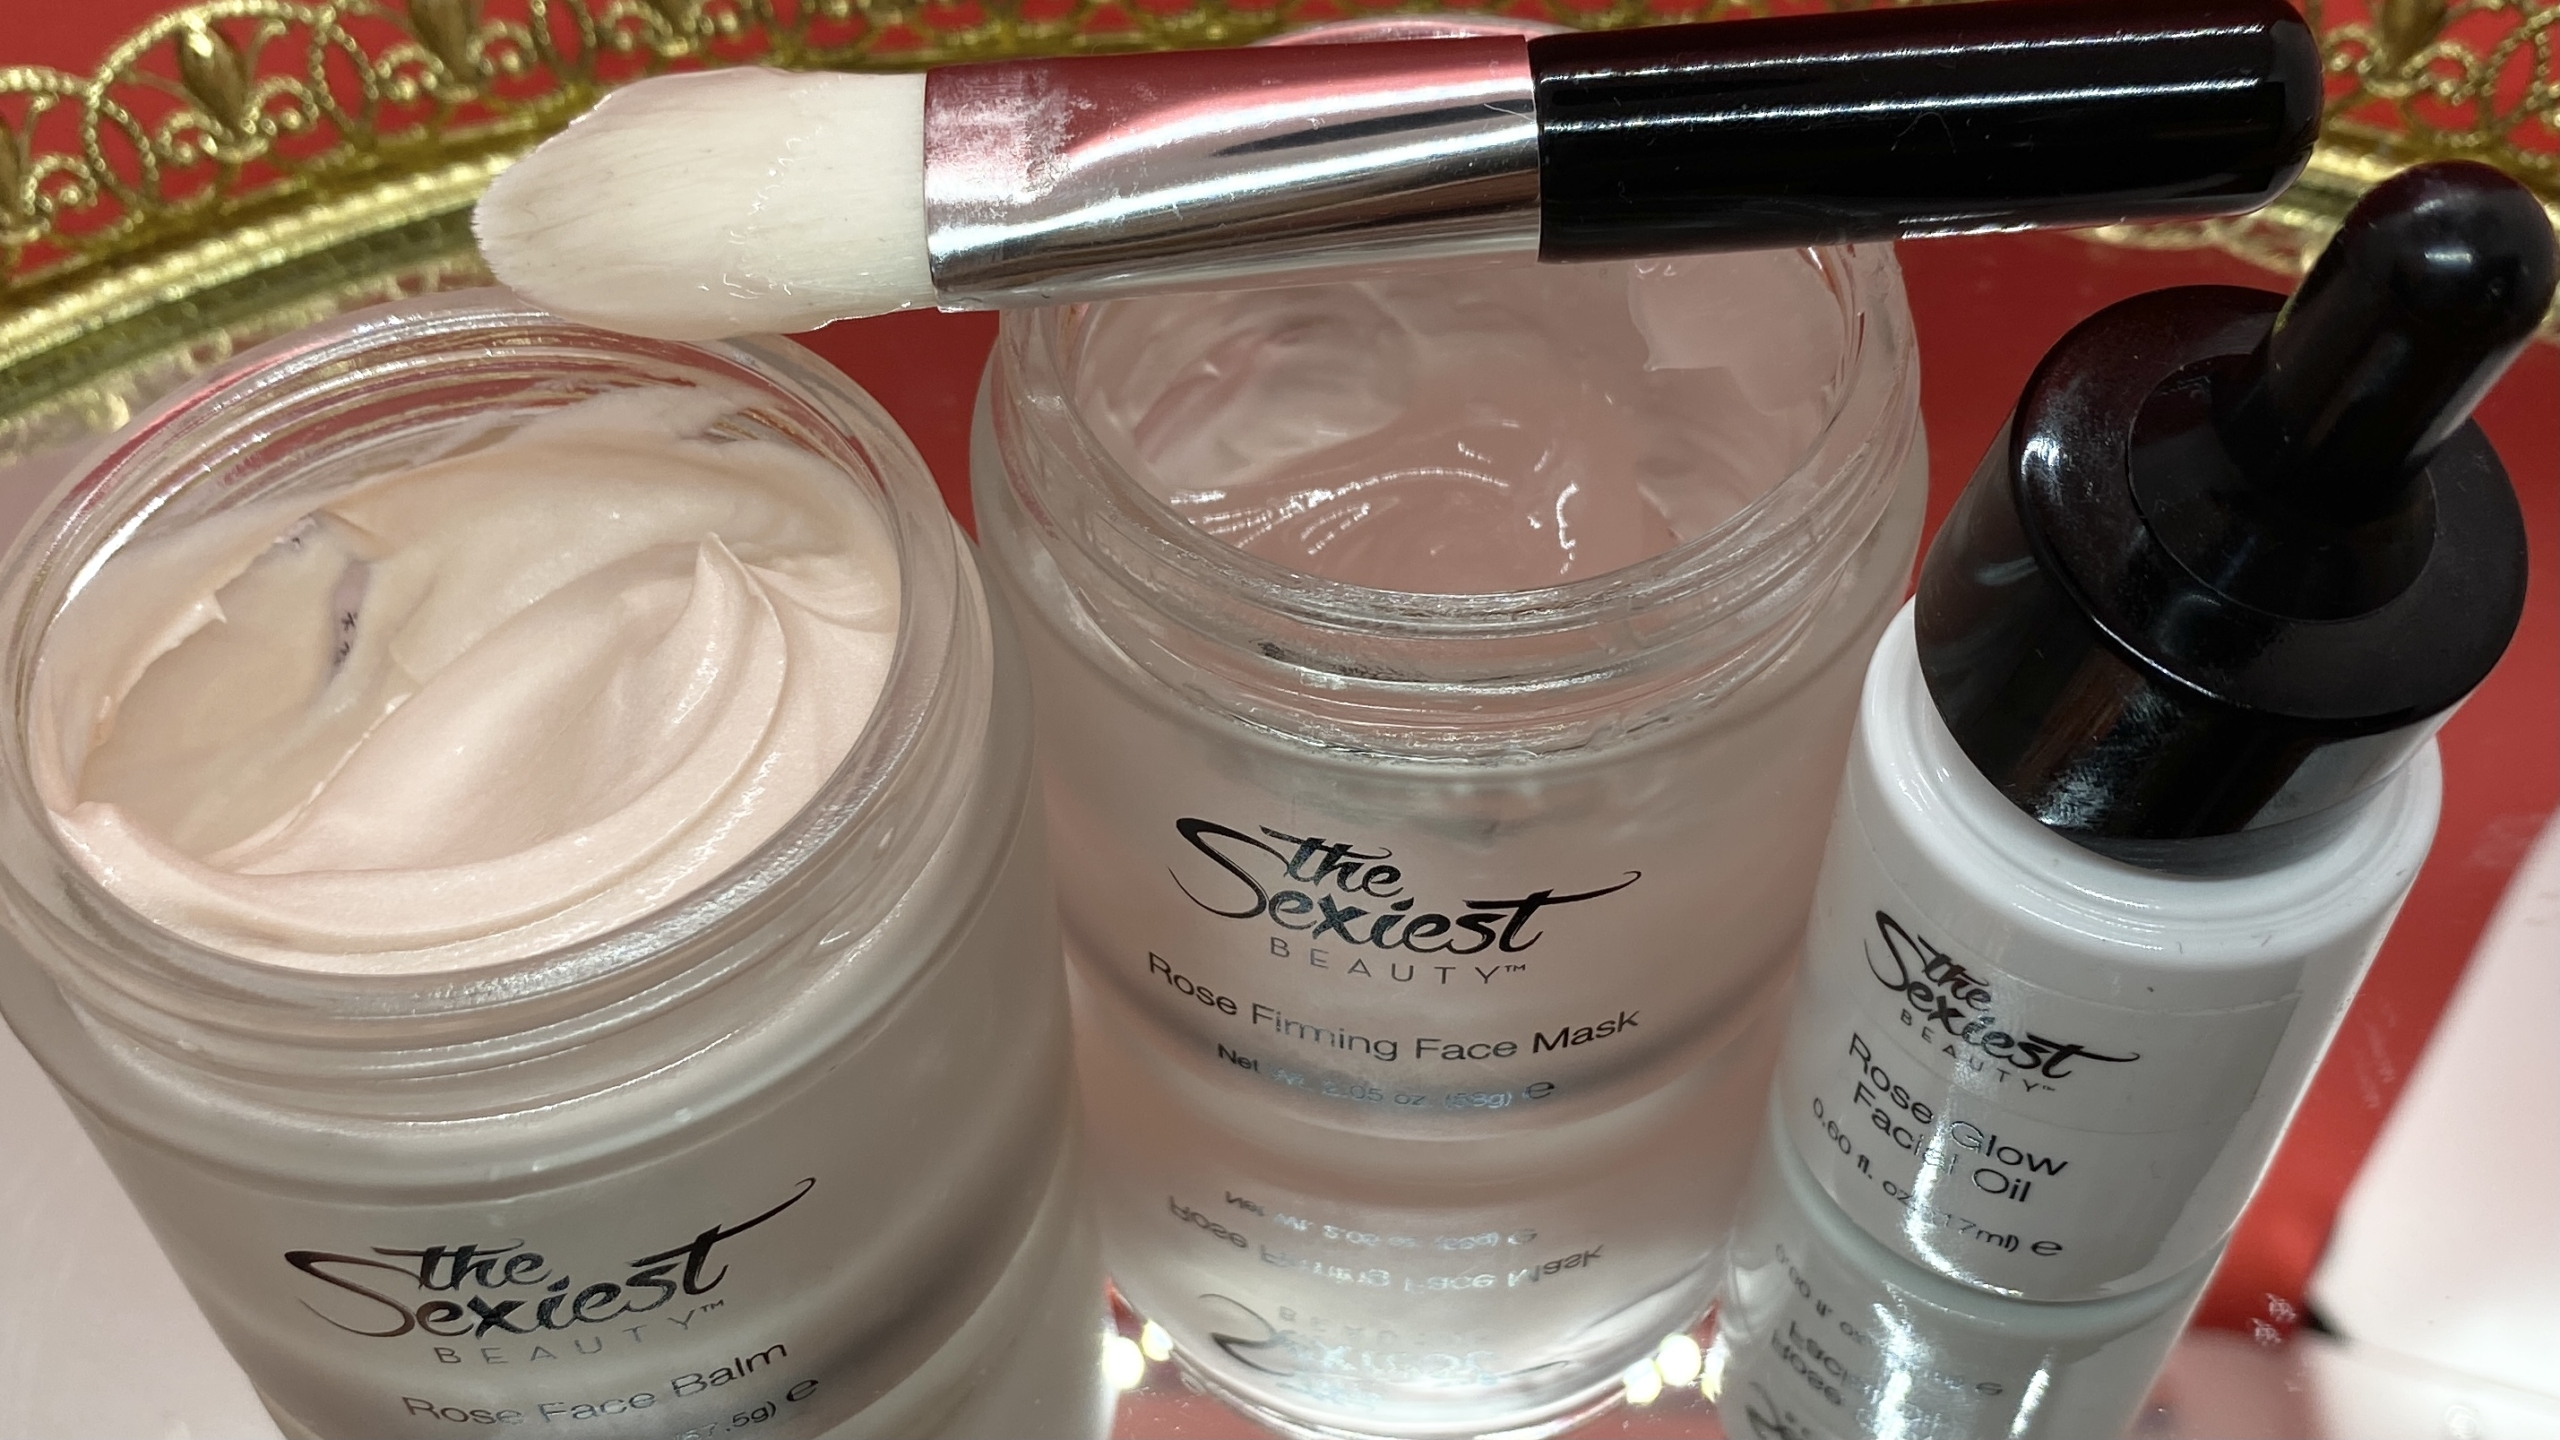 The Sexiest Beauty mask, balm, oil and brush